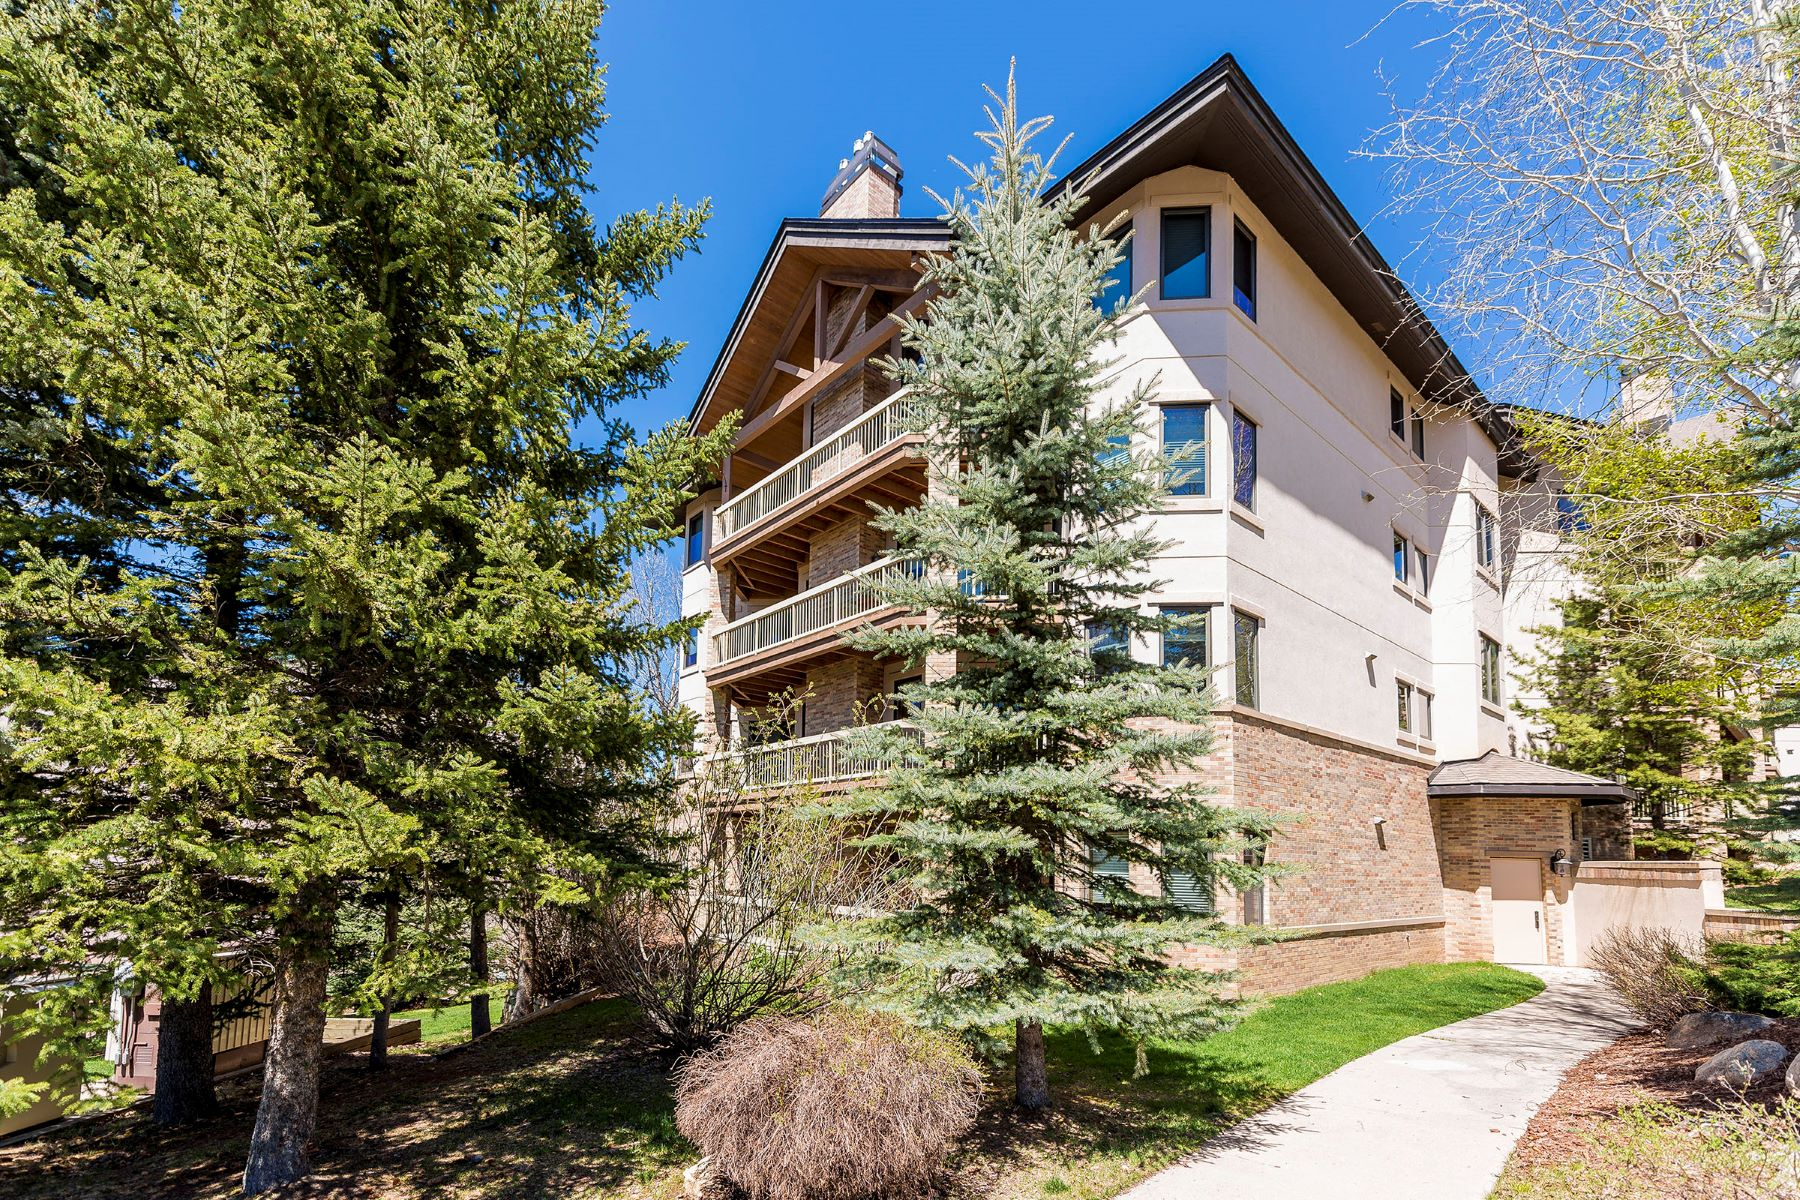 Condominium for Sale at Chateau Chamonix Ski-In Luxury 2340 Apres Ski Way C325 Steamboat Springs, Colorado 80487 United States